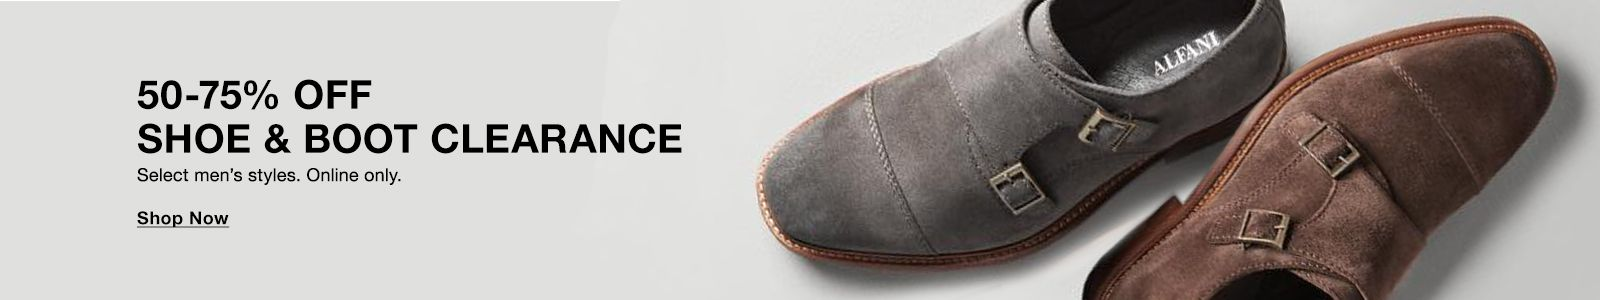 50-75% Off, Shoe and Boot Clearance, Select men's styles, Online only, Shop Now